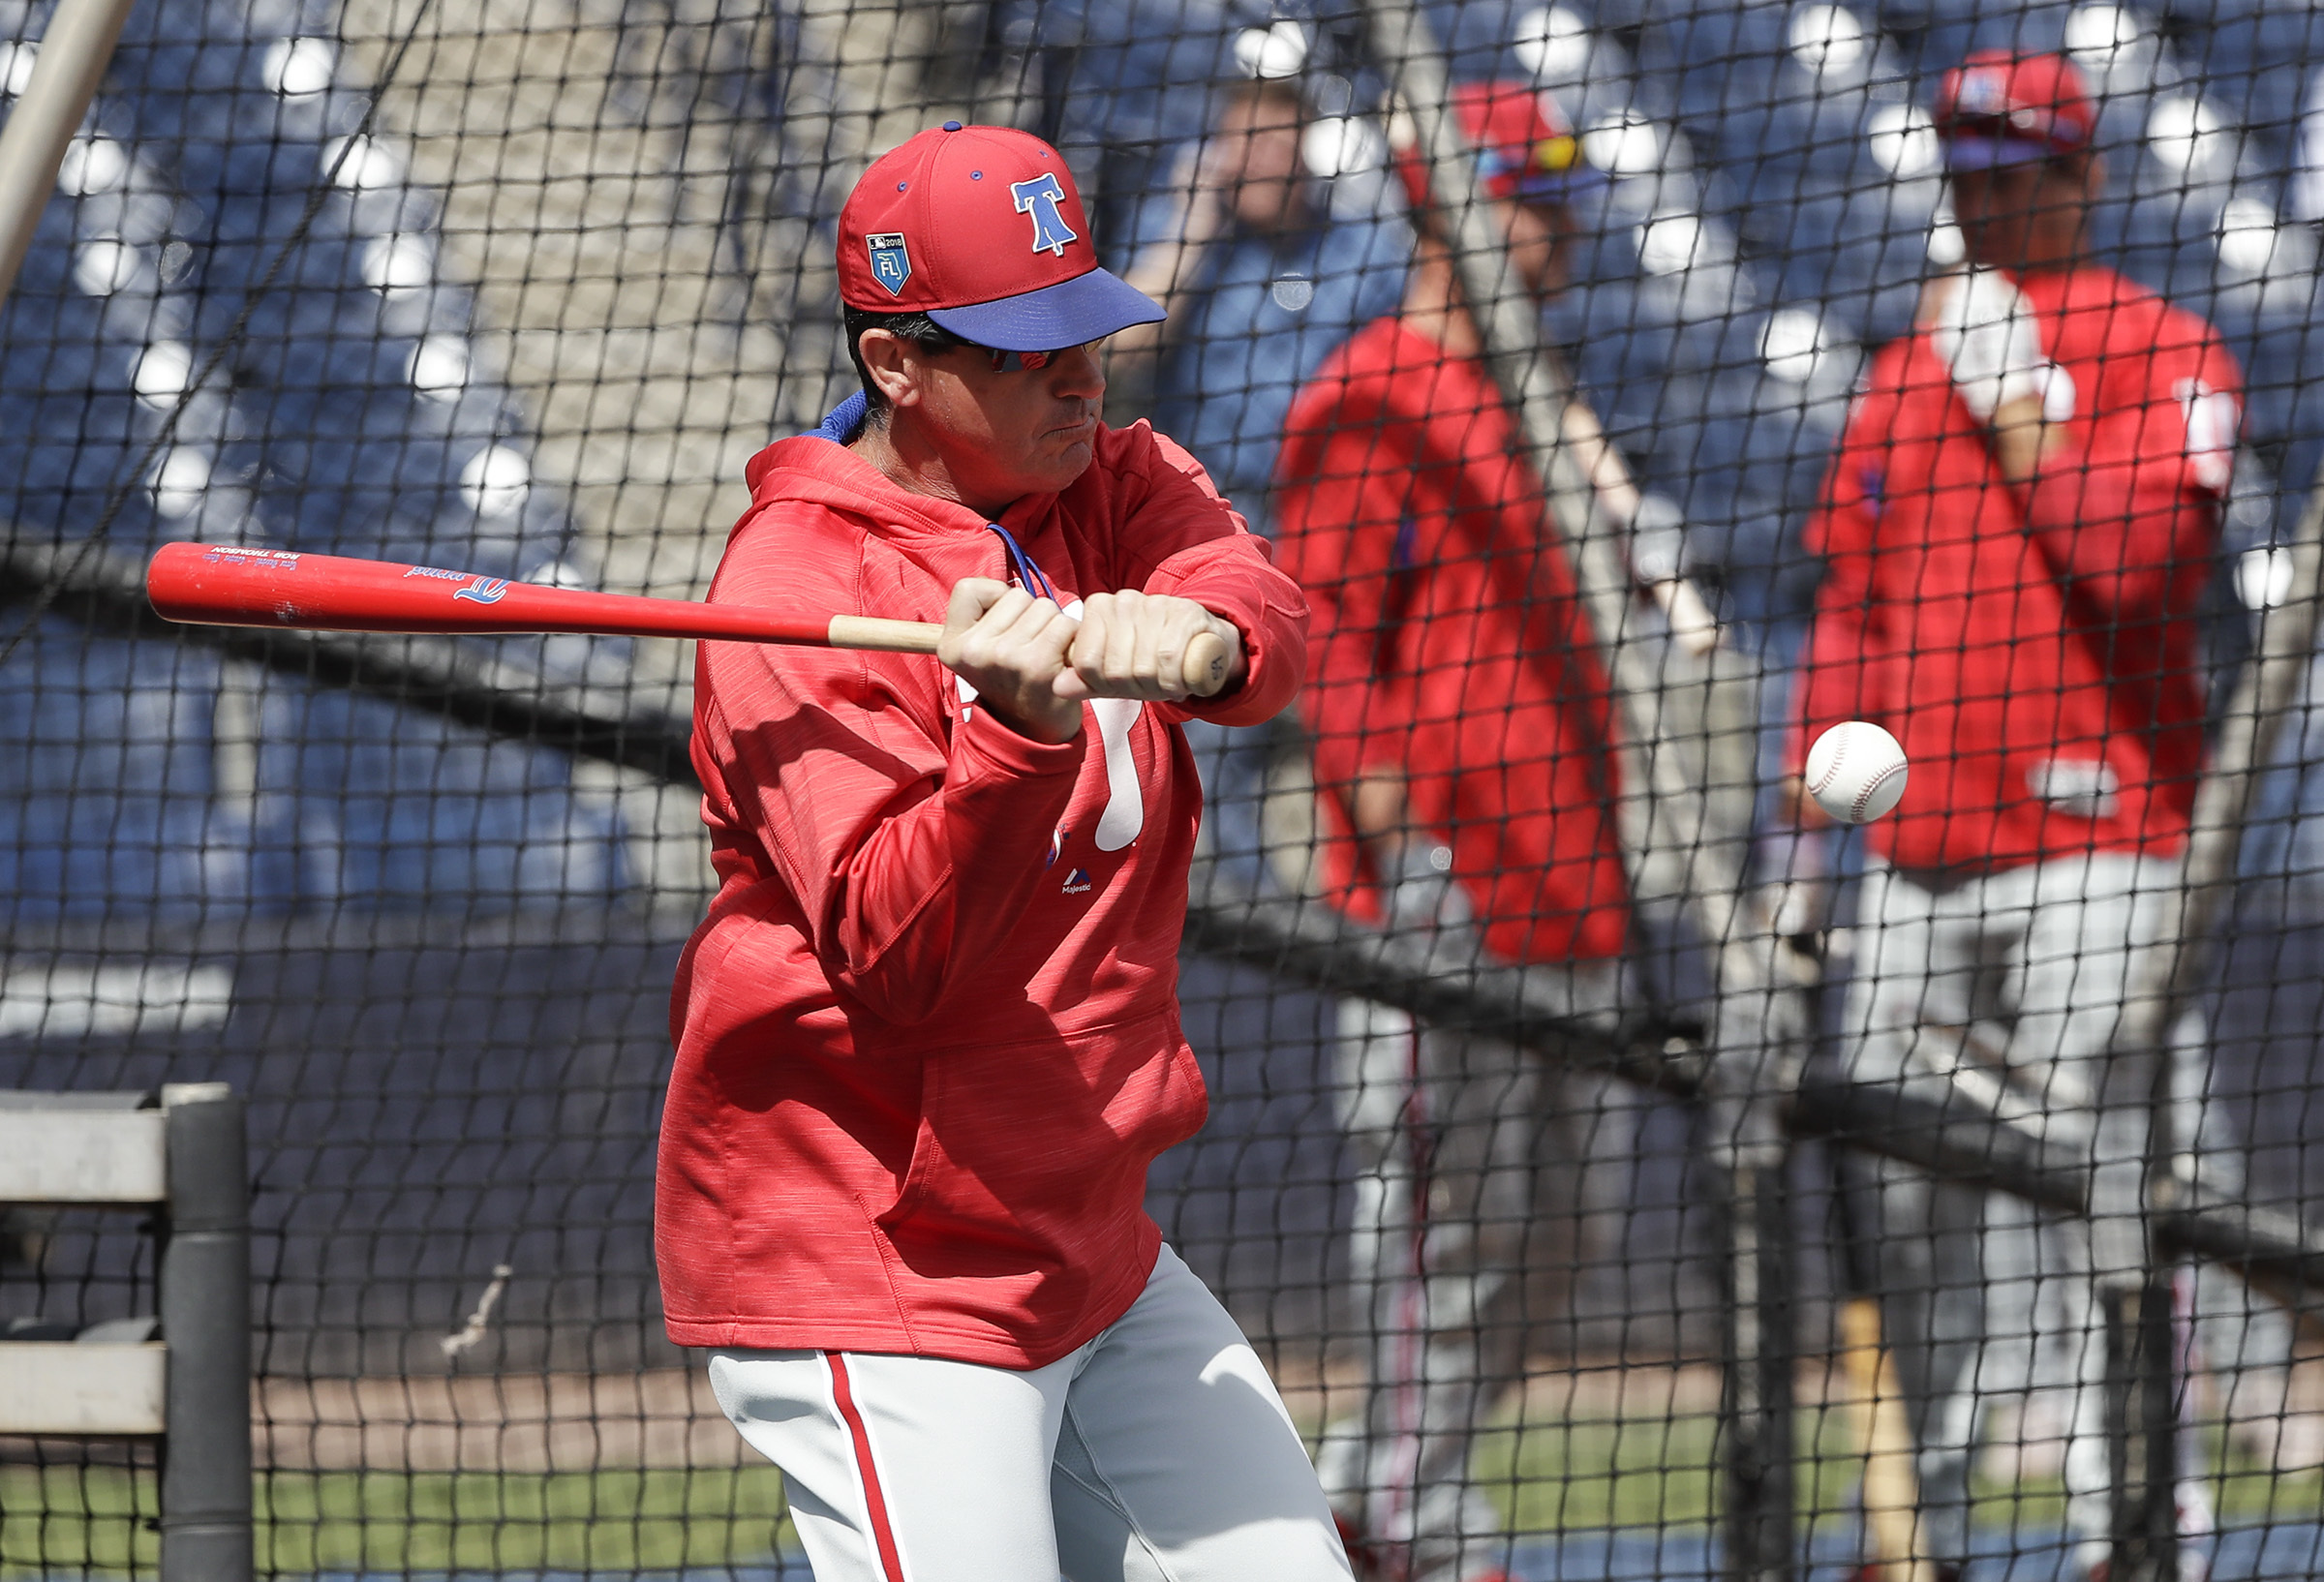 Phillies bench coach Rob Thomson hits the baseball during fielding drills before the Phillies play the New York Yankees in a spring training game at George M. Steinbrenner Field in Tampa on Thursday, March 8, 2018.